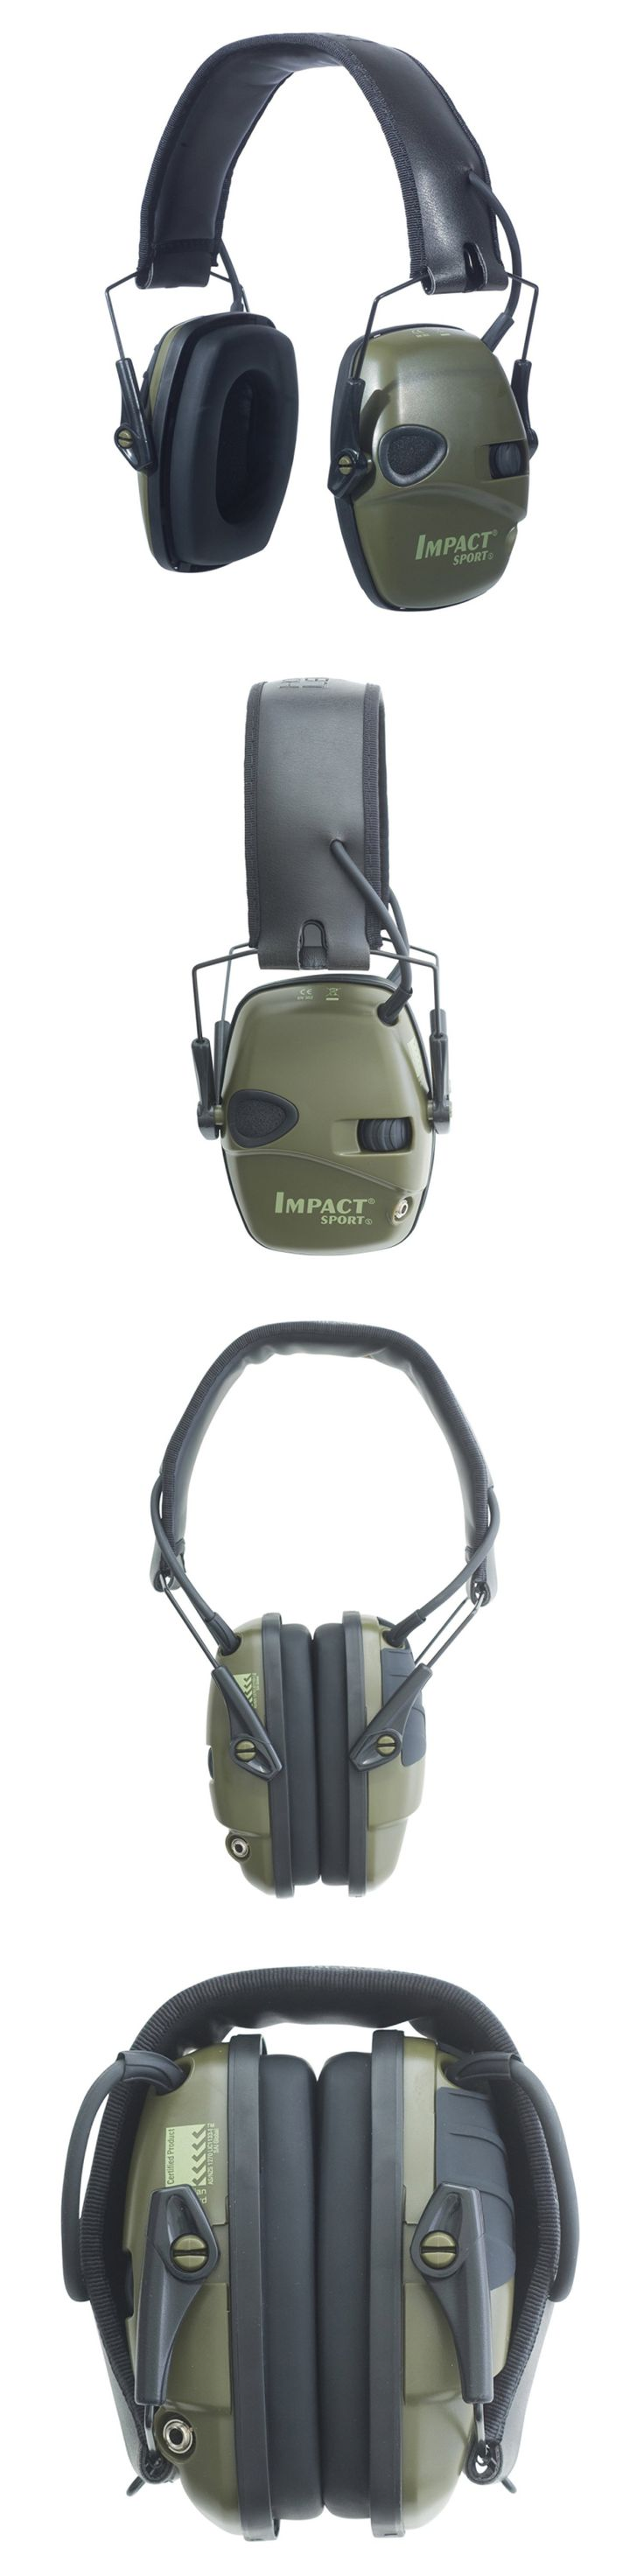 Hearing Protection 73942: Electronic Ear Muffs Shooting Protection Noise Cancelling Head Gear Impact Sport -> BUY IT NOW ONLY: $51.32 on eBay!